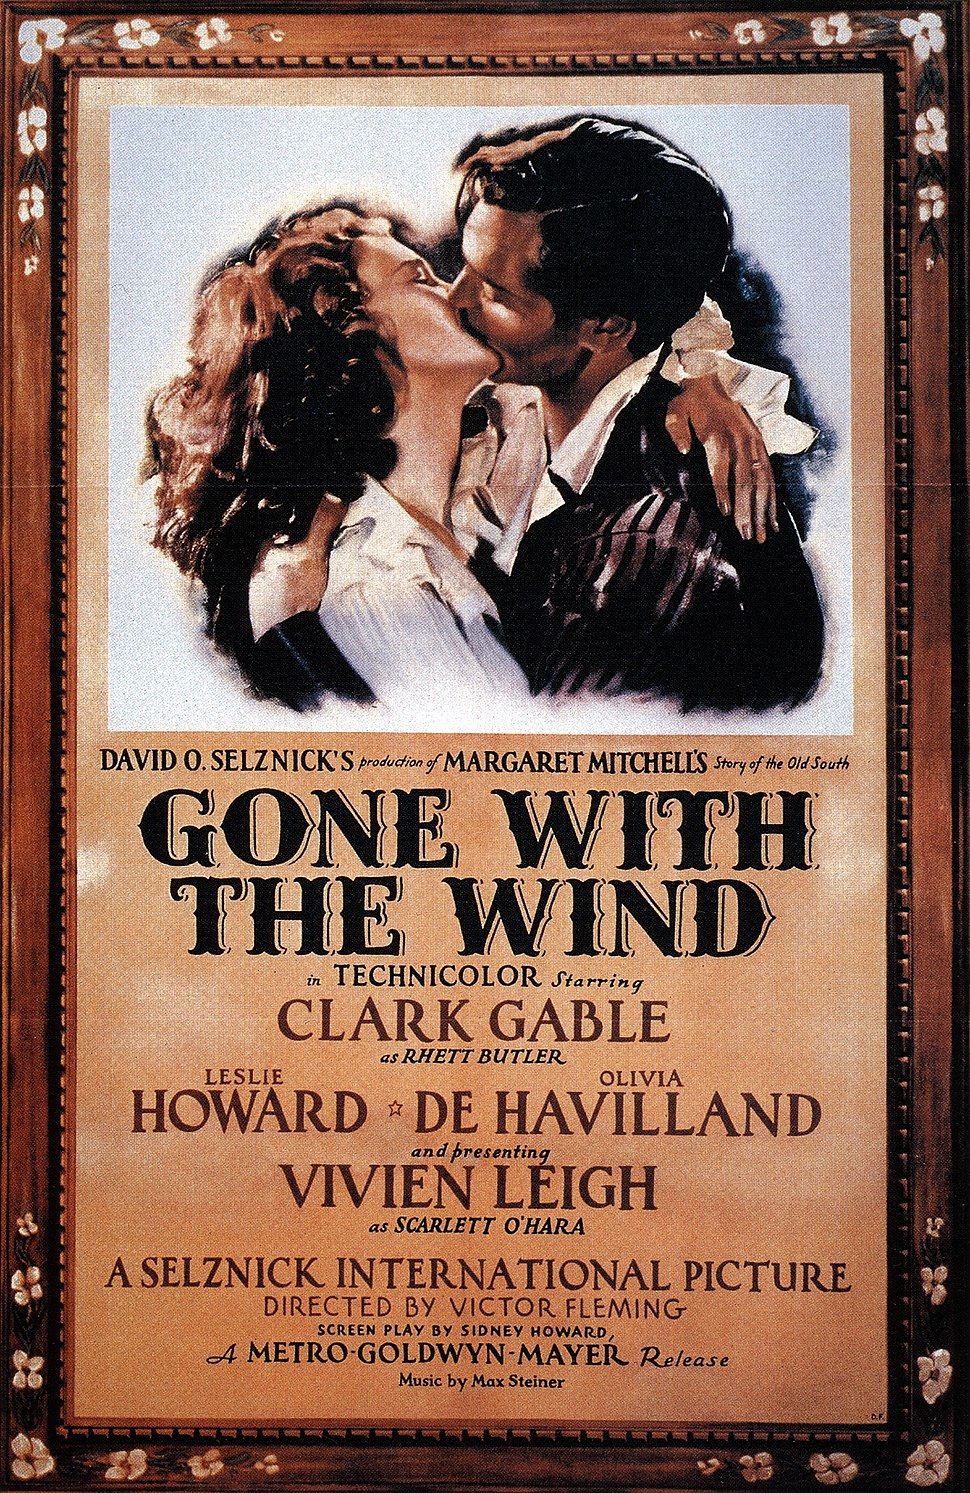 A film poster showing a man and a woman in a passionate embrace.